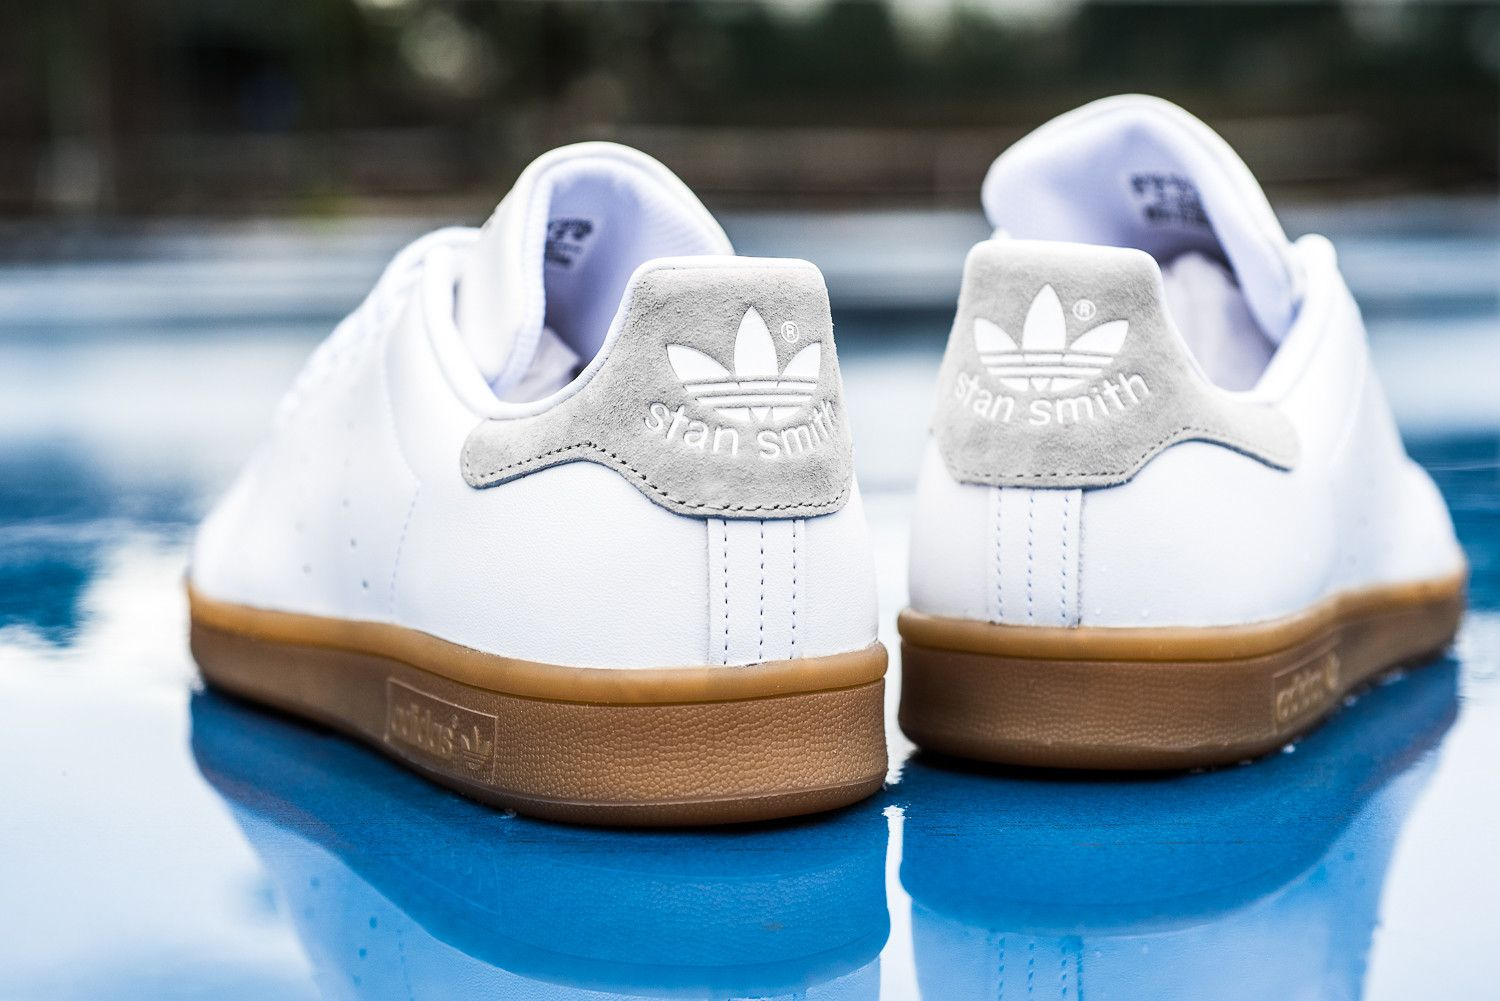 Dressing A Chaussures Adidas Originals Stan Smith White Gum Sneaks And Socks